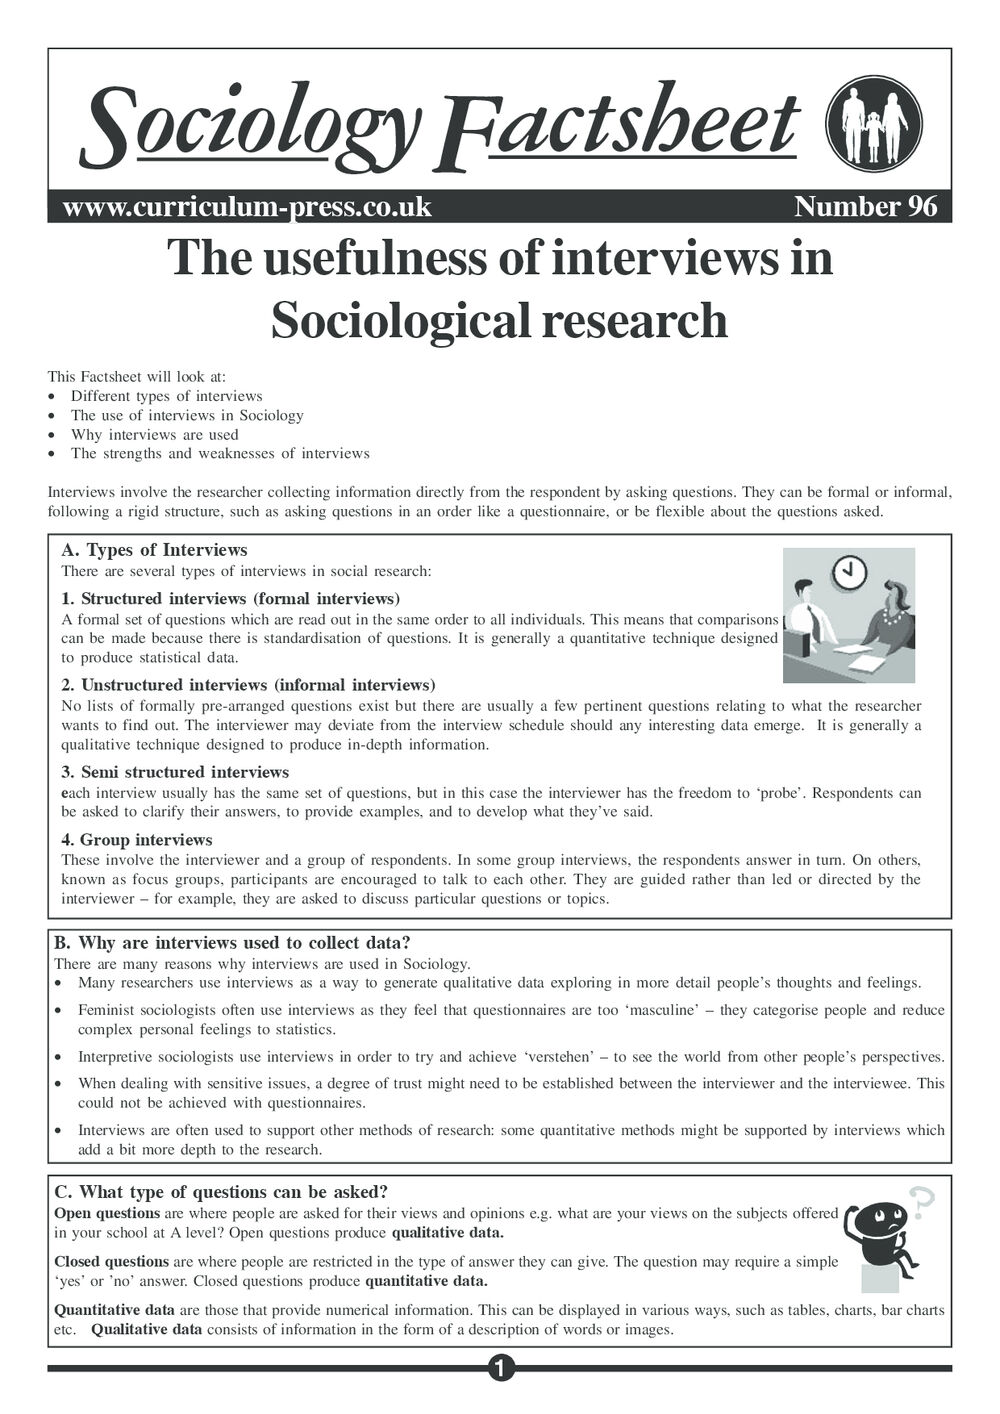 Curriculum Press - The Usefulness of Interviews in